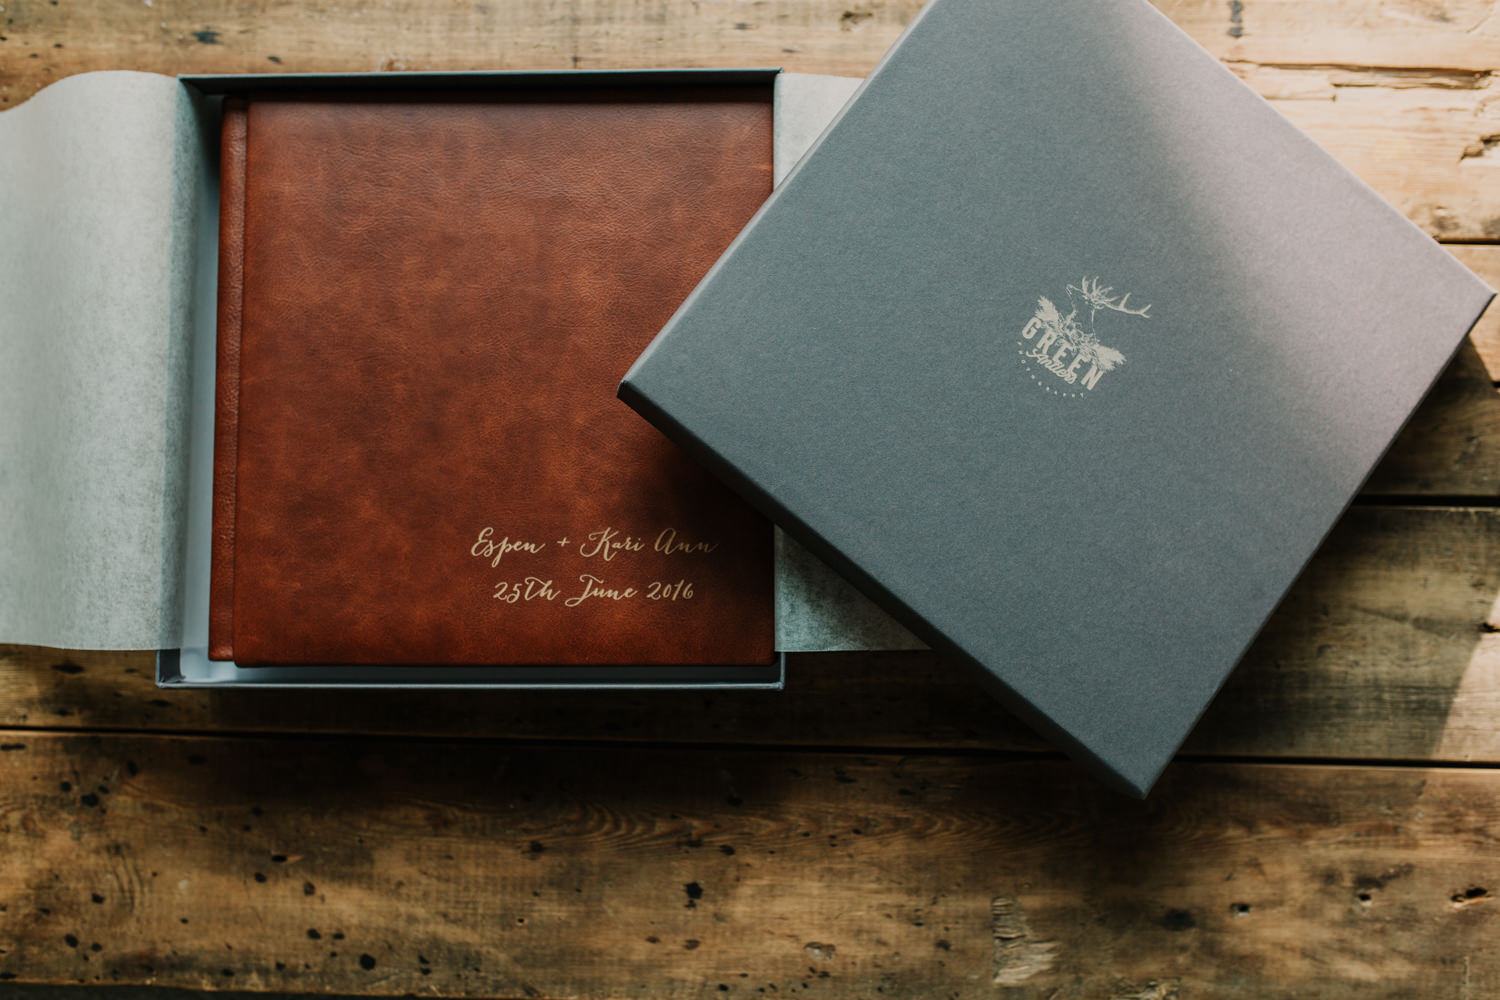 presentation box with Green Antlers Photography logo and cognac brown leather wedding album